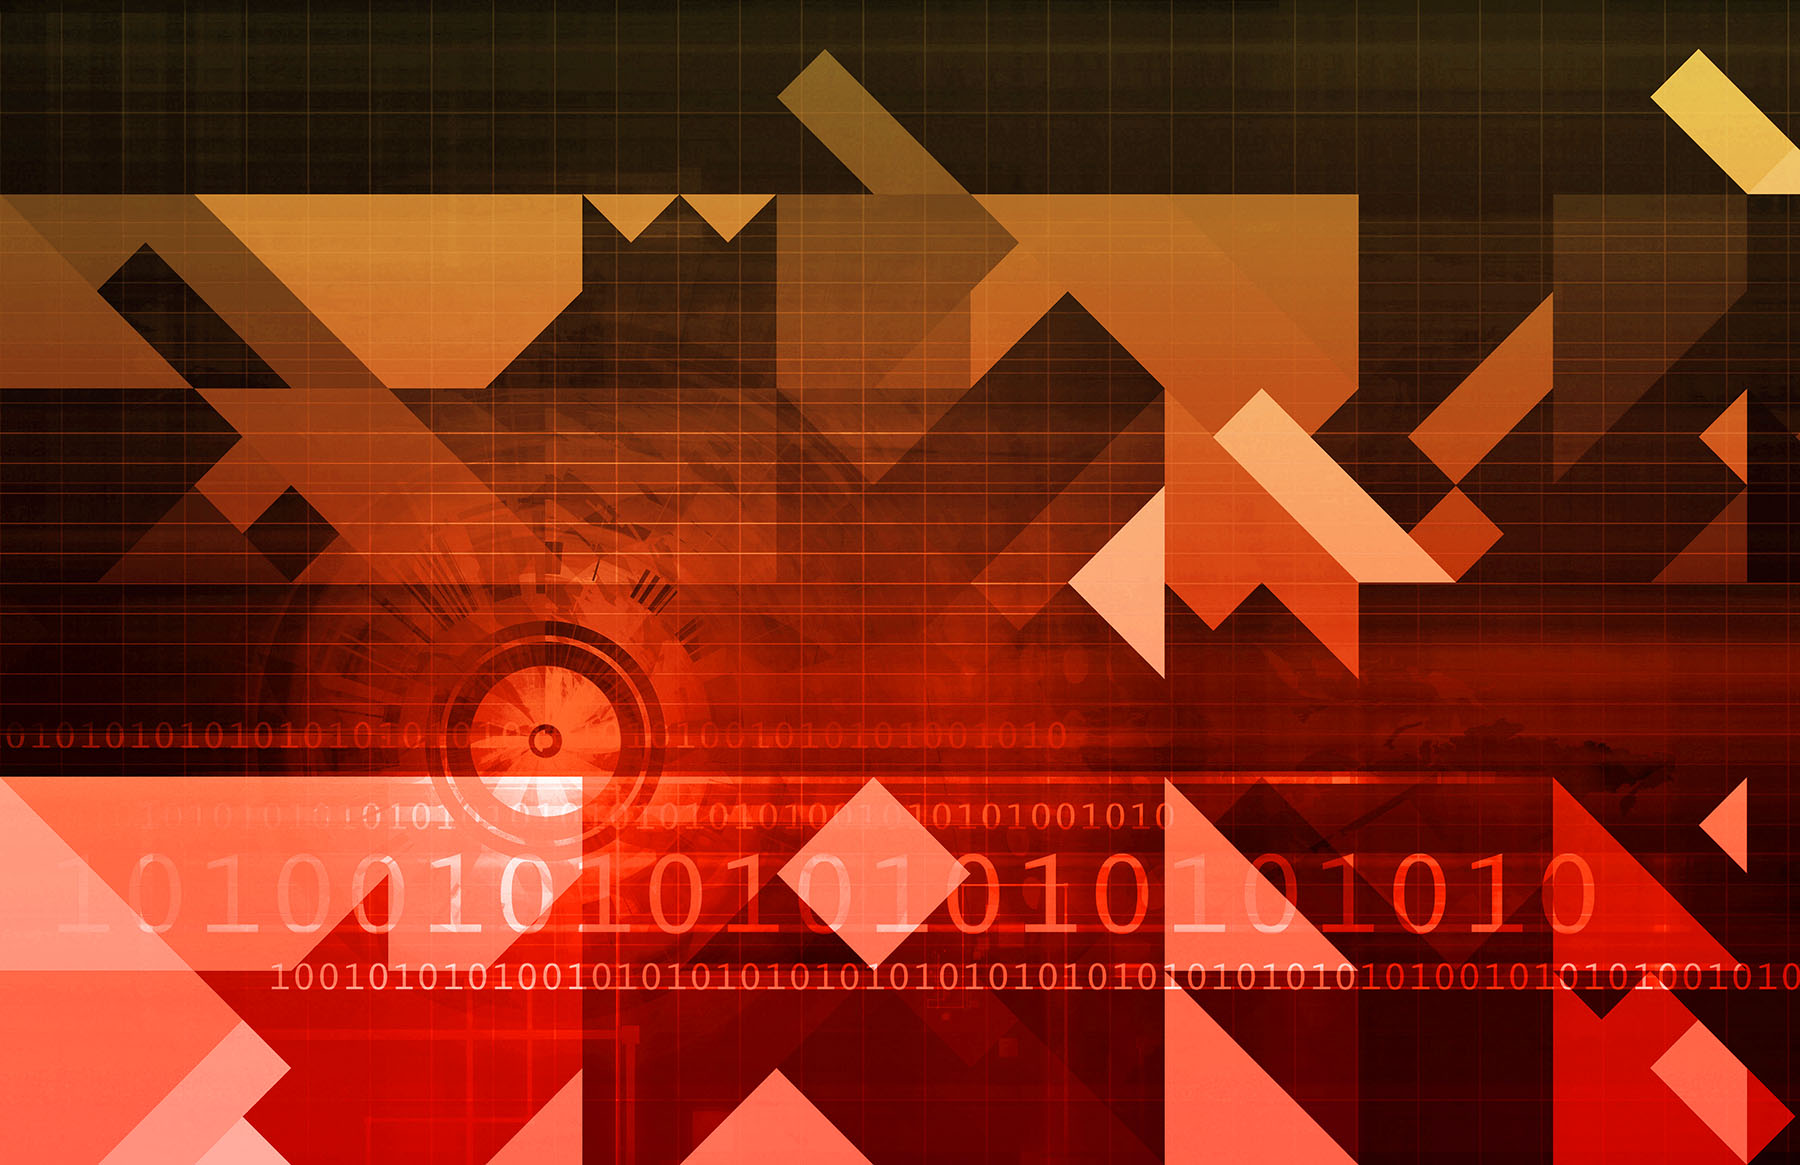 Static Analysis as an Important Tool for Business Intelligence in Software Development